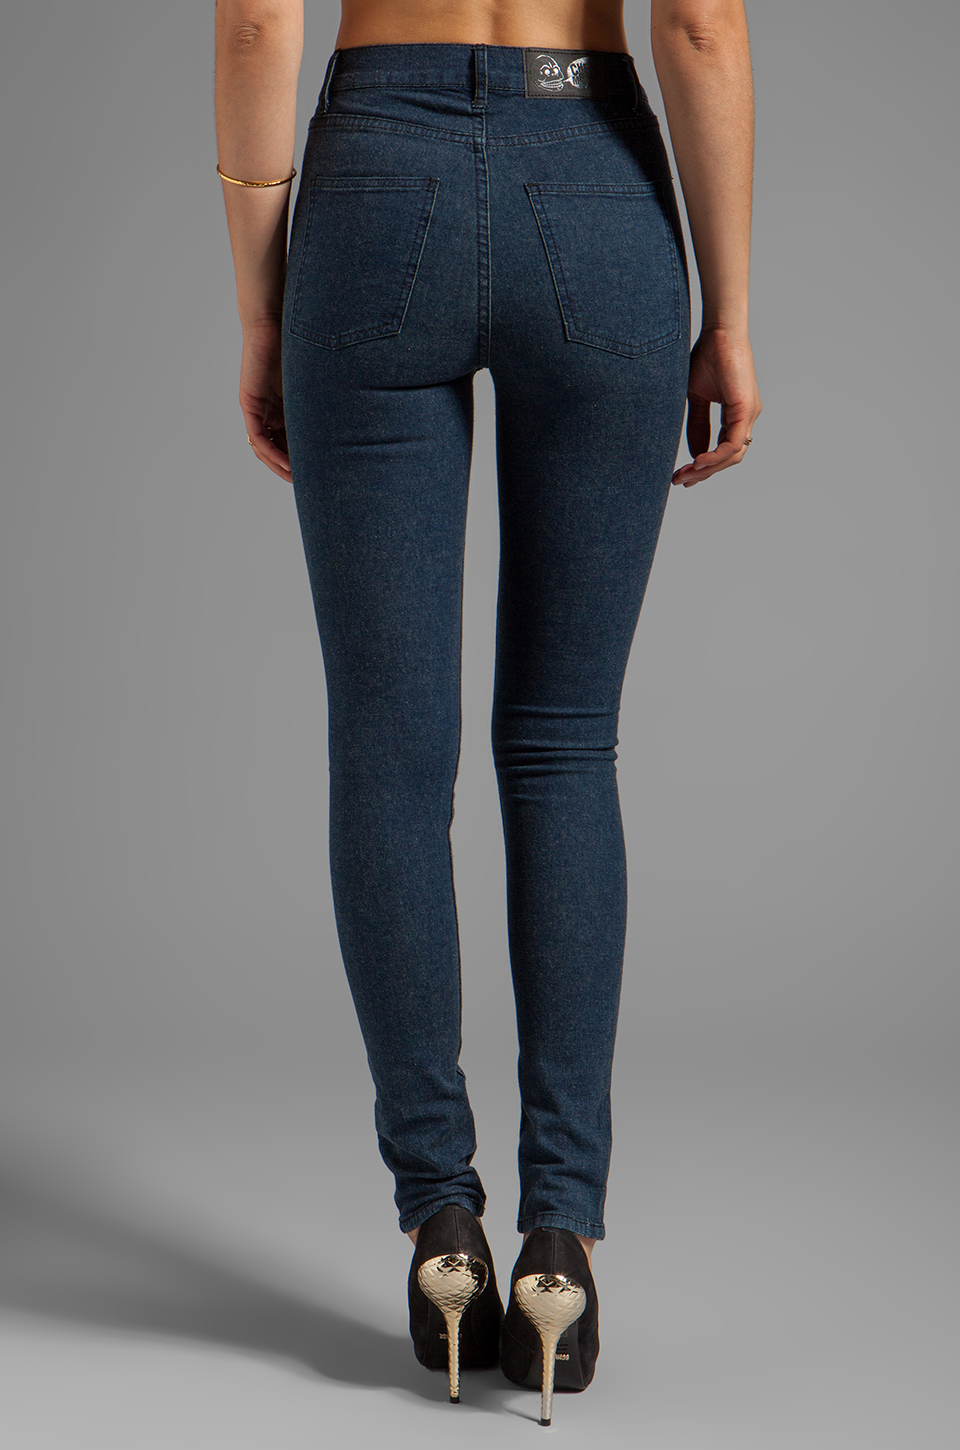 Cheap Monday Second Skin in Very Stretch Onewash | REVOLVE